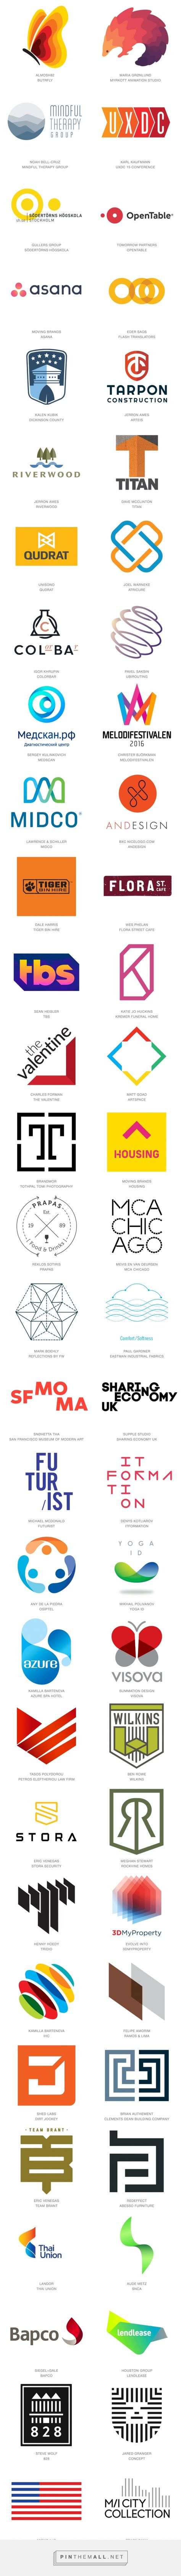 2016 Logo Trends | Articles | LogoLounge... - a grouped images picture